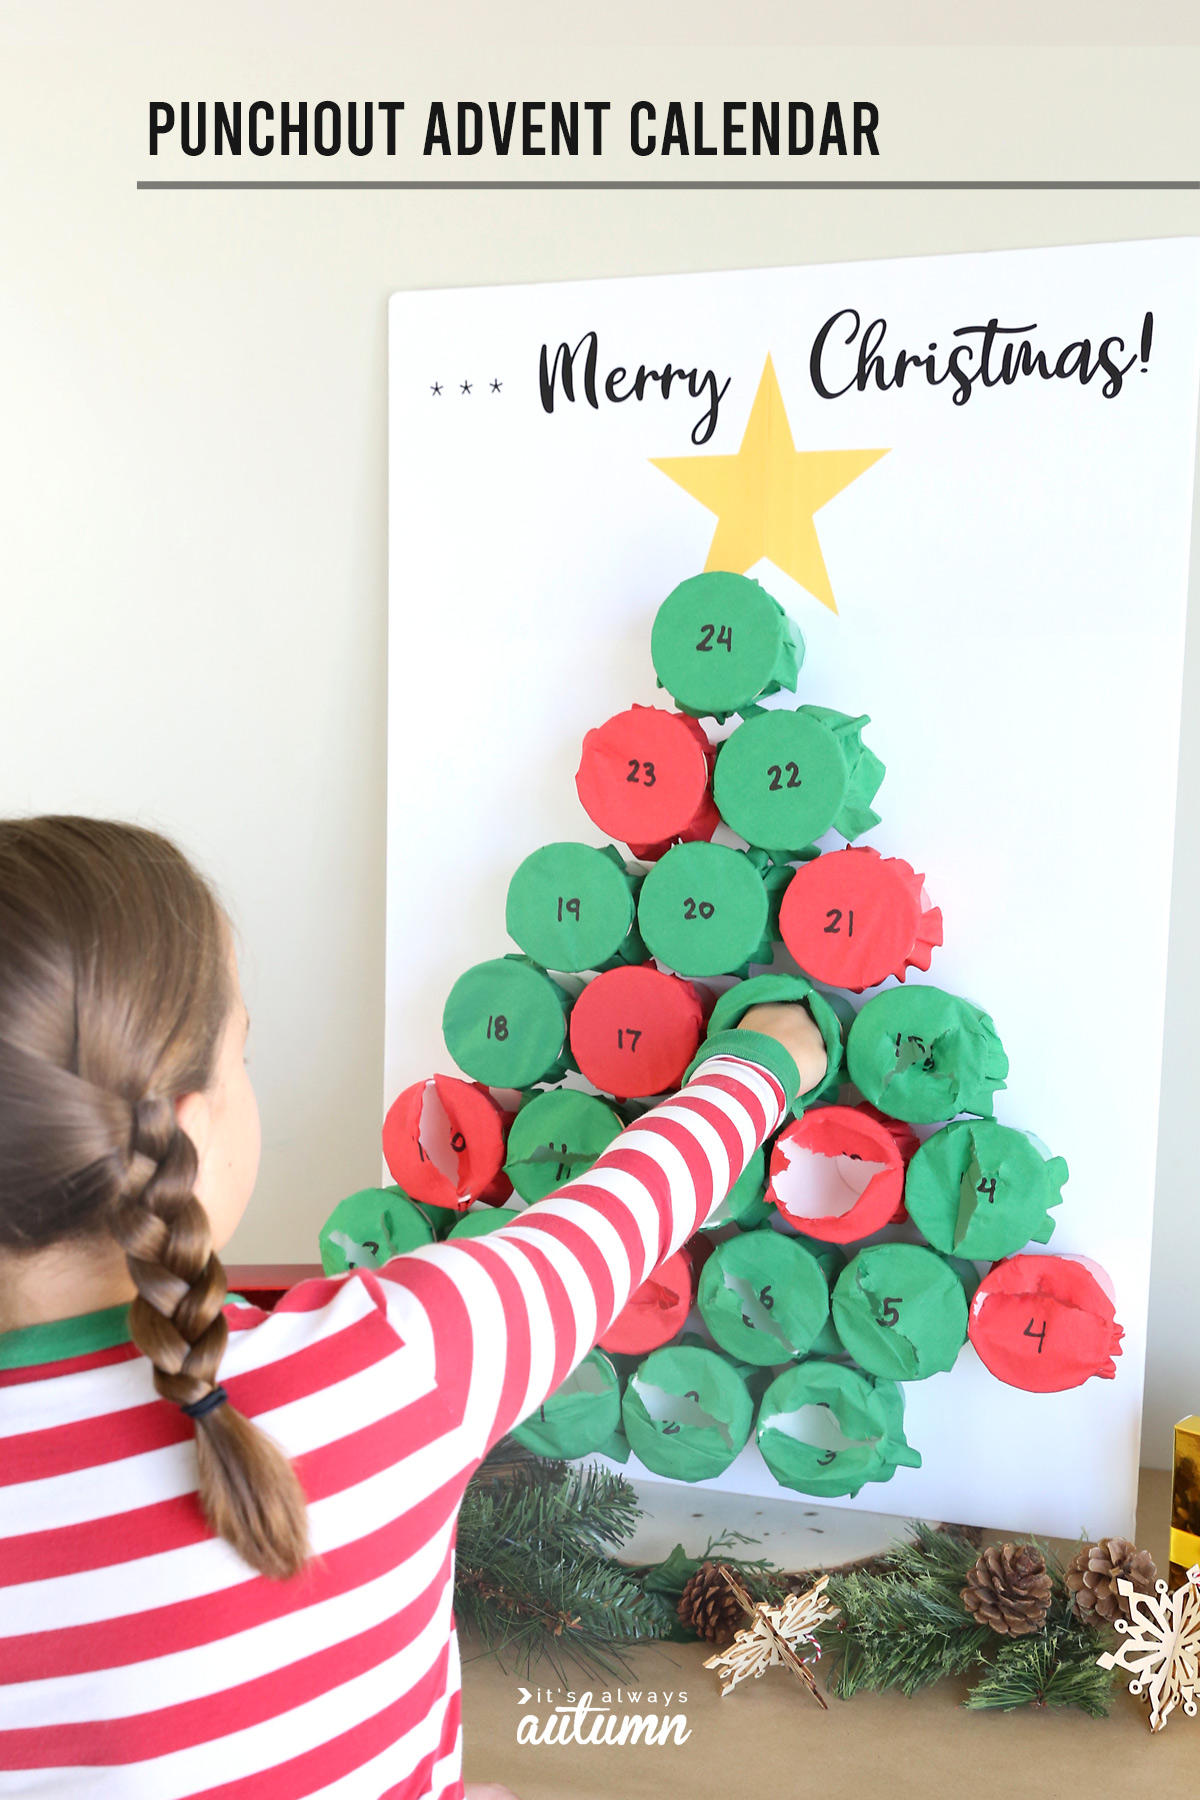 How to make a punchout Advent Calendar for Christmas